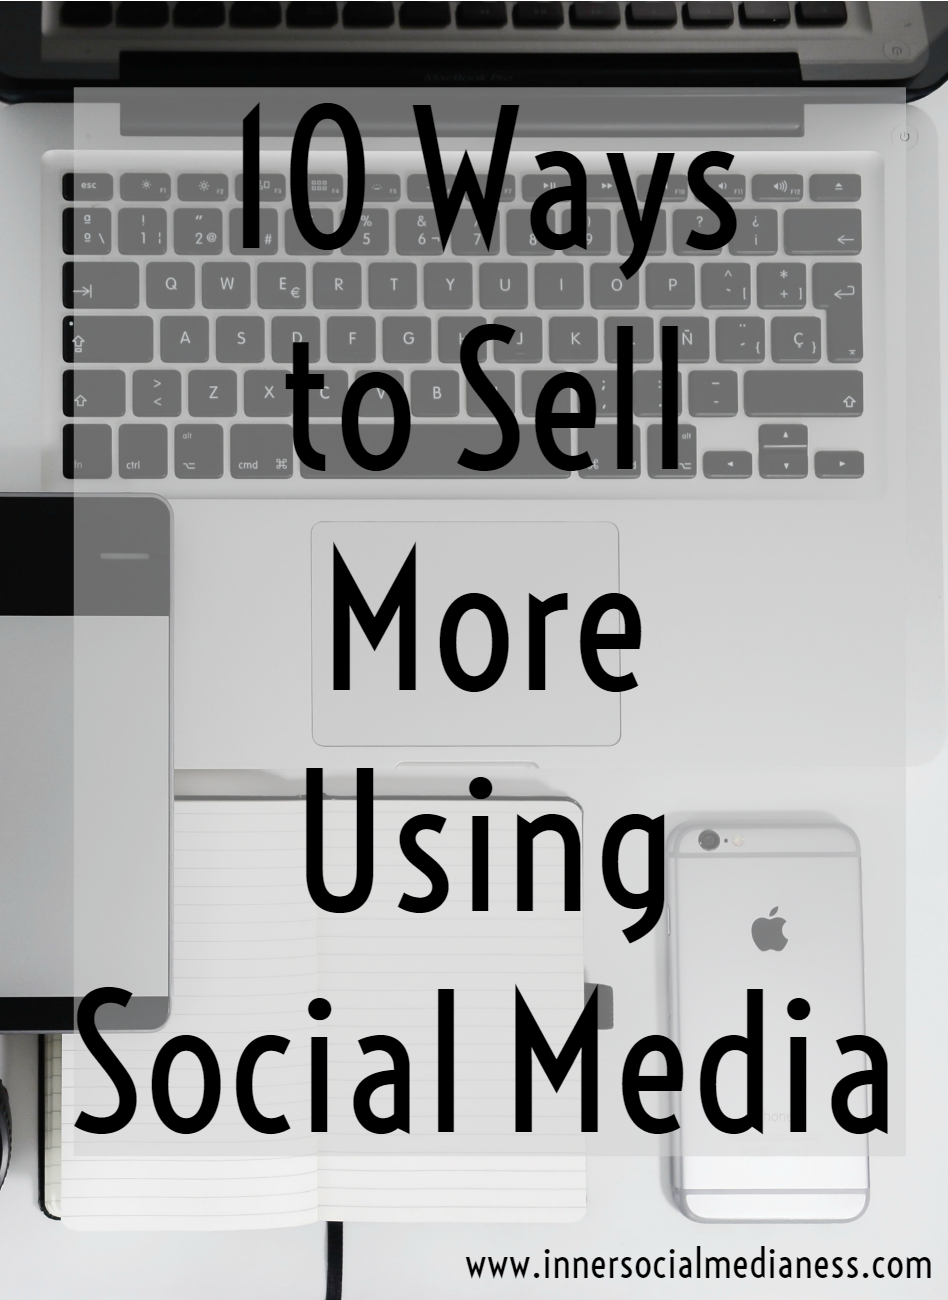 10 Ways to Sell More Using Social Media - how do you find more of your customers to connect with you? There's a lot advice out there so I compiled them all together to give you the 10 ways to help you sell more using social media.